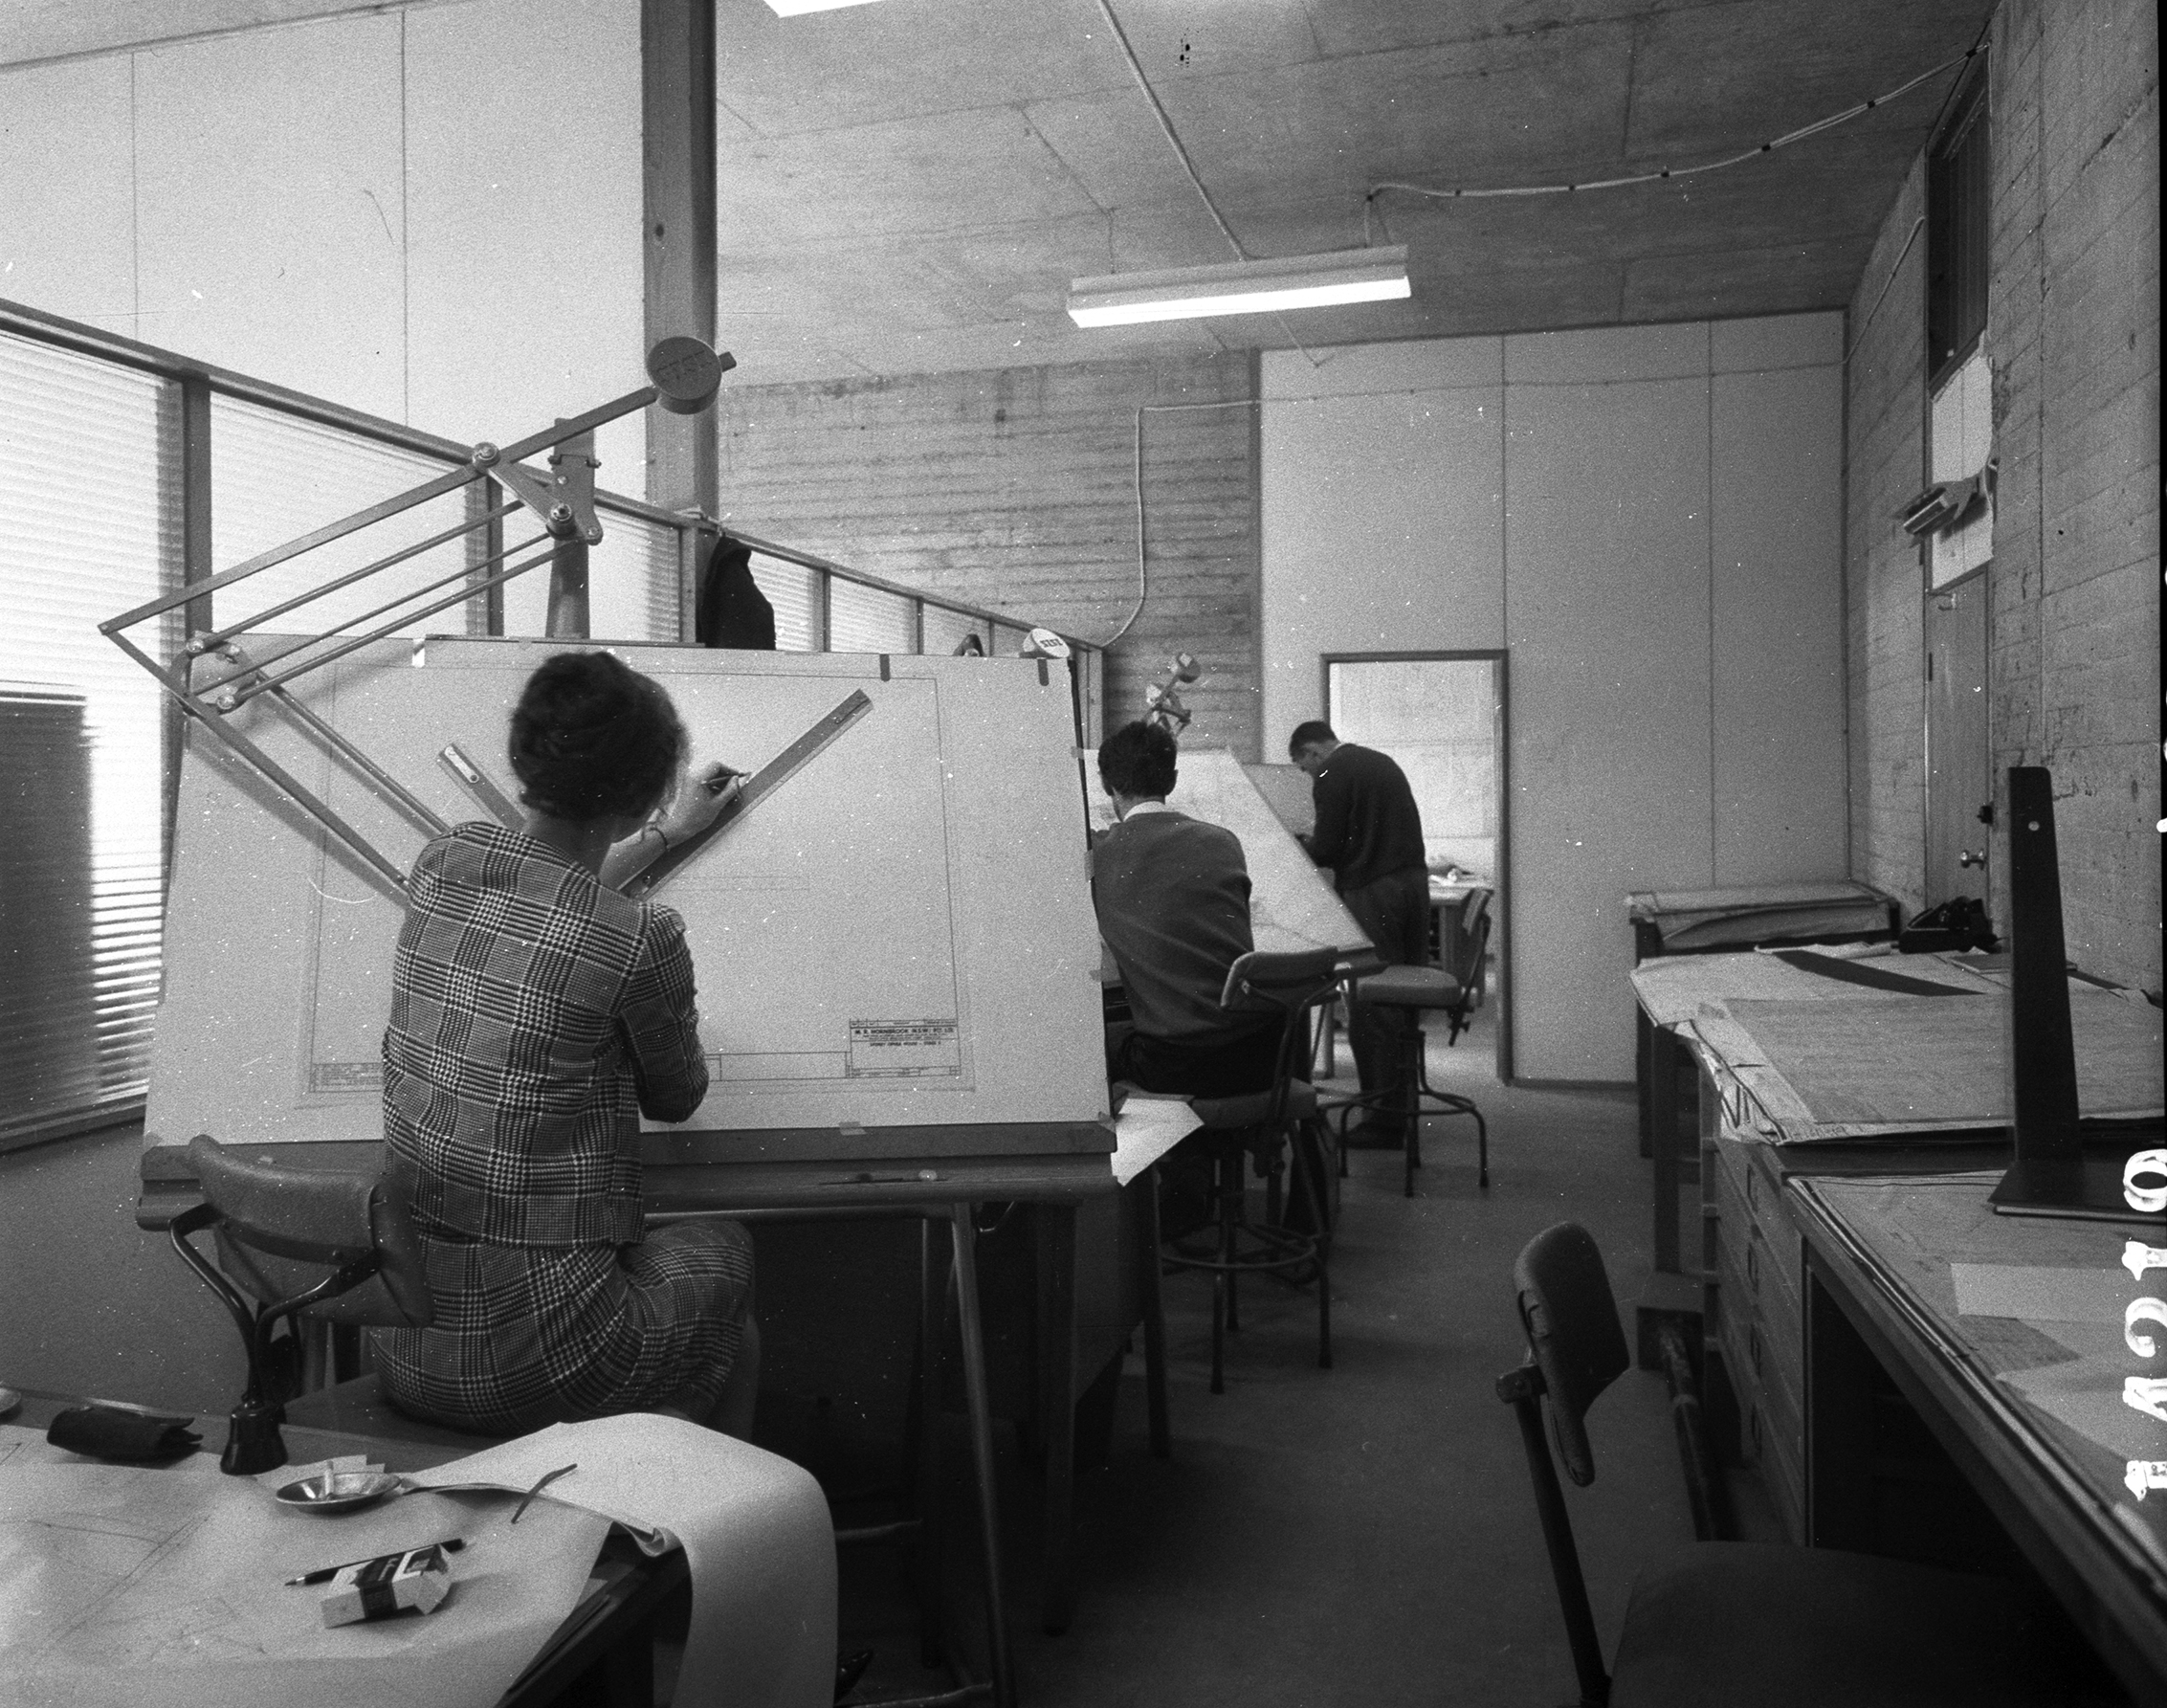 A black and white photograph of architects working at drafting tables in 1963